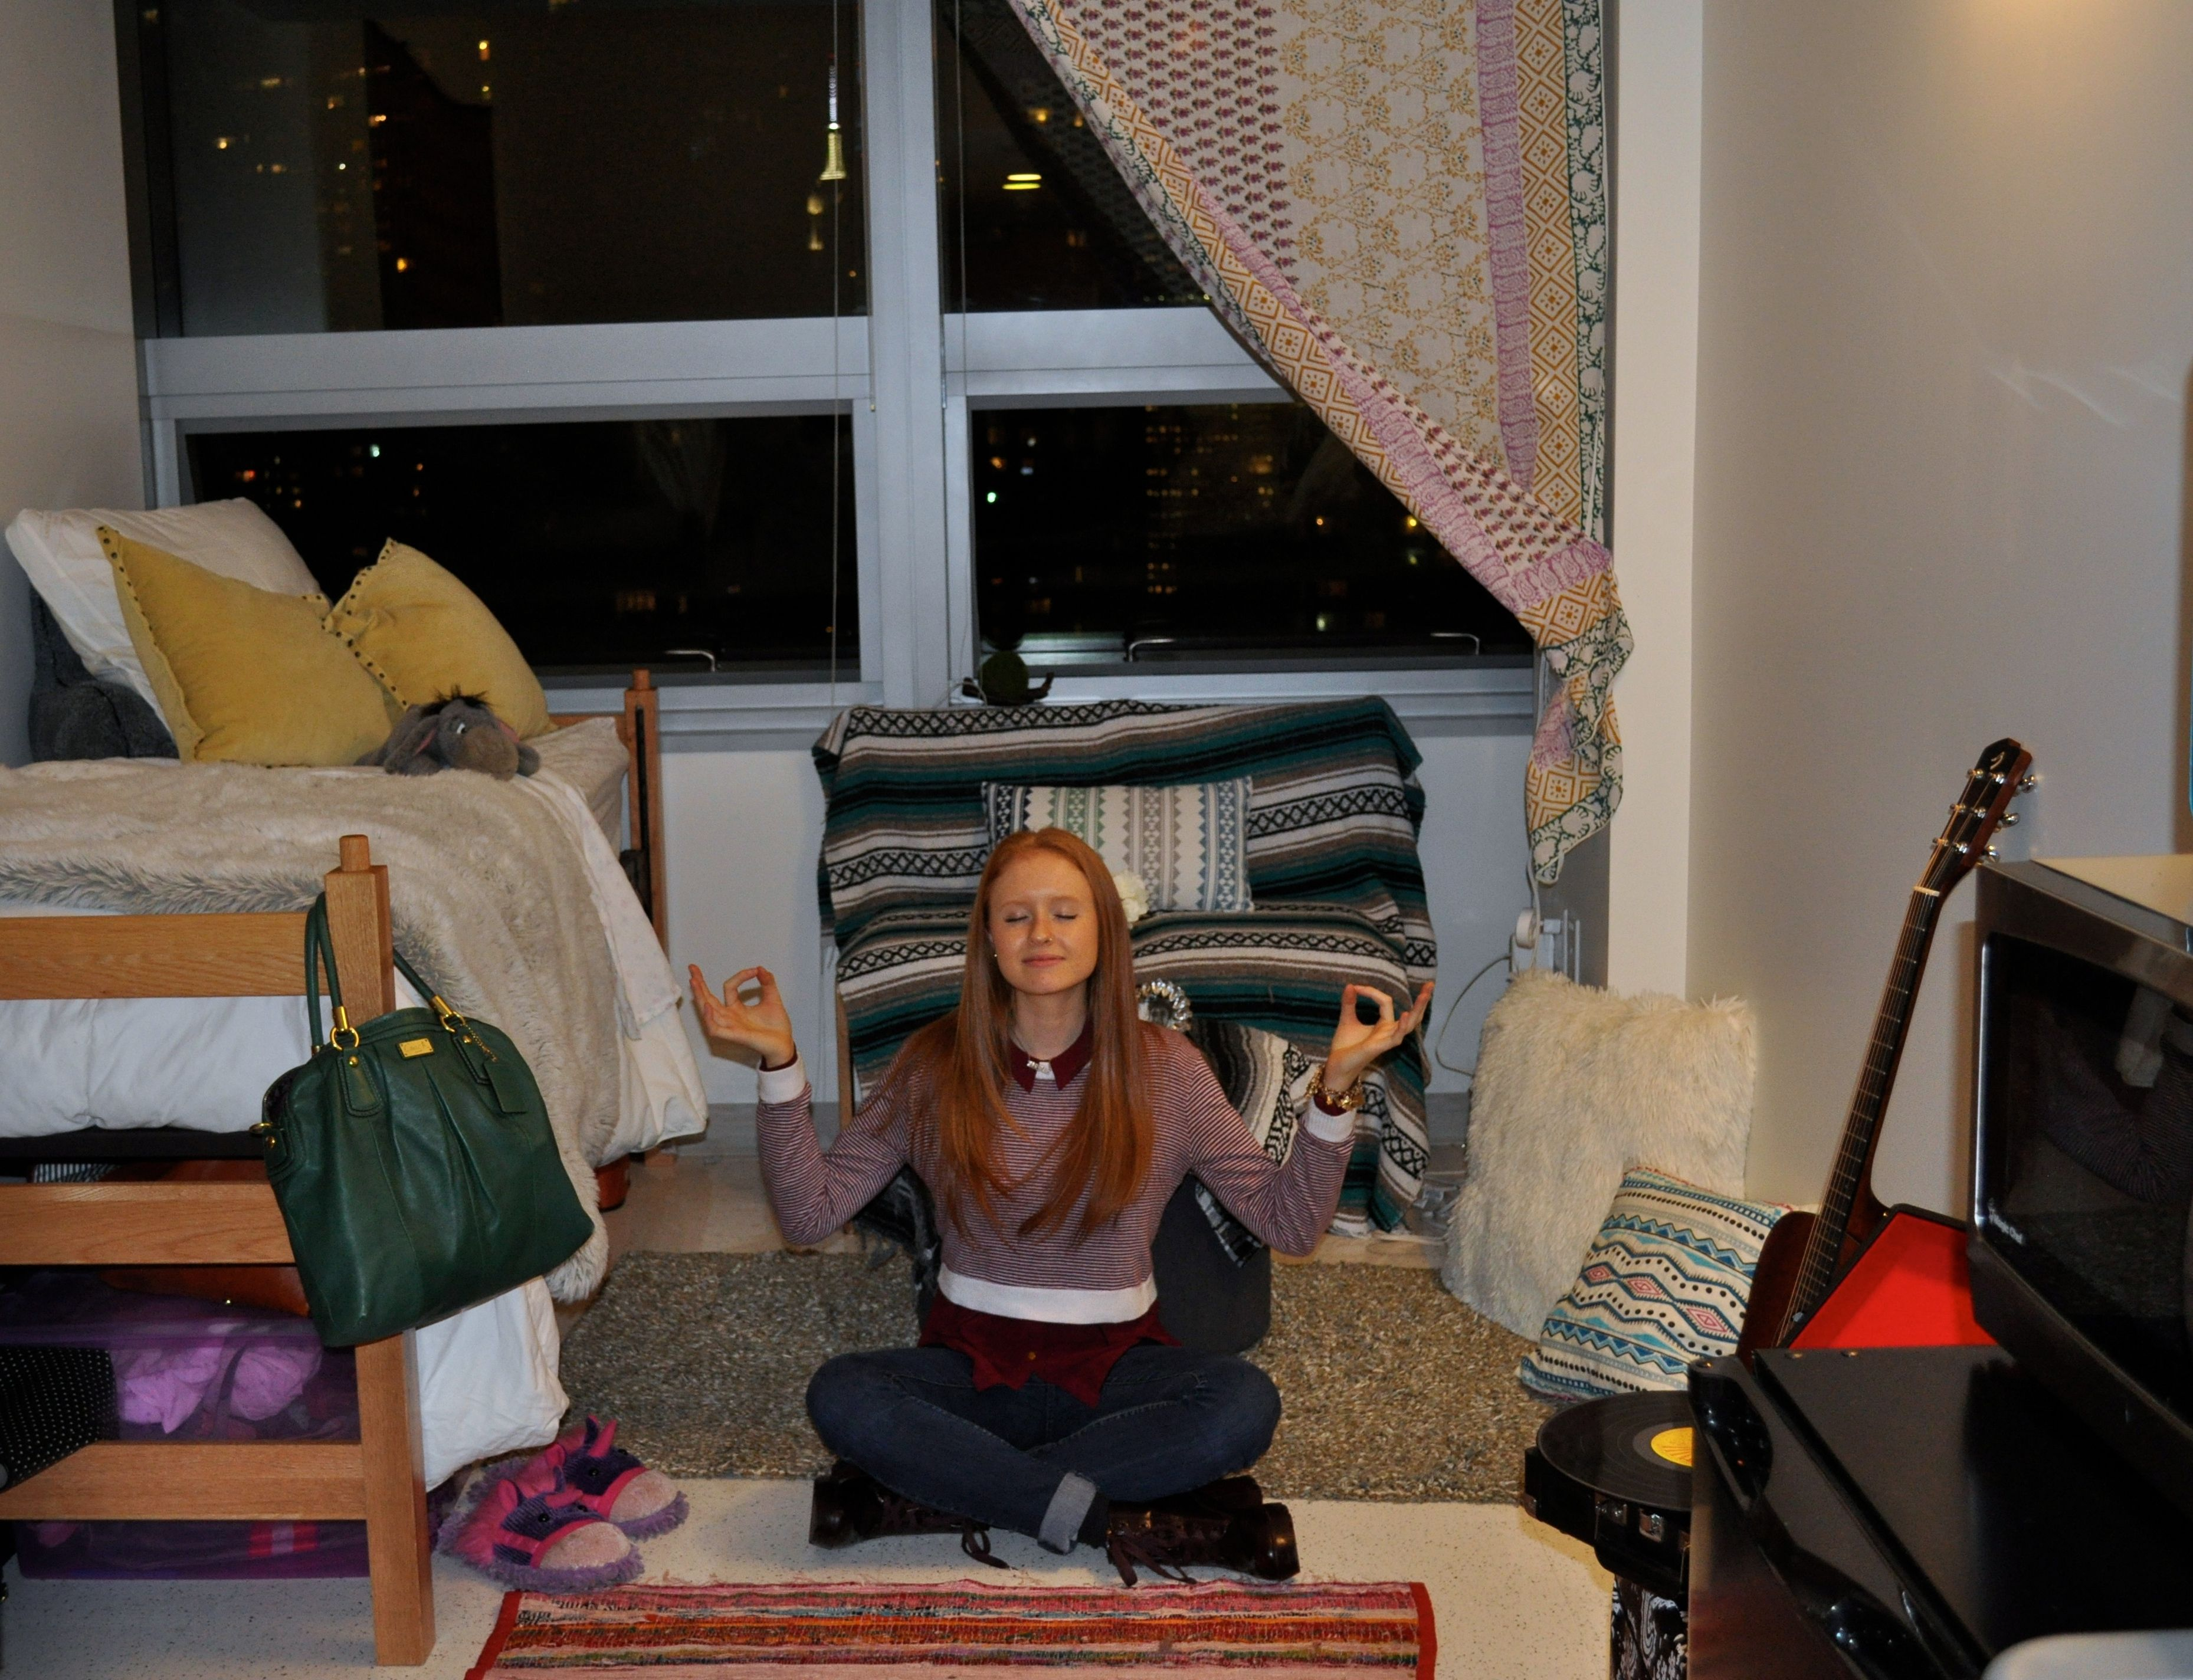 How To Be An Exceptional Roommate Aimee's Published